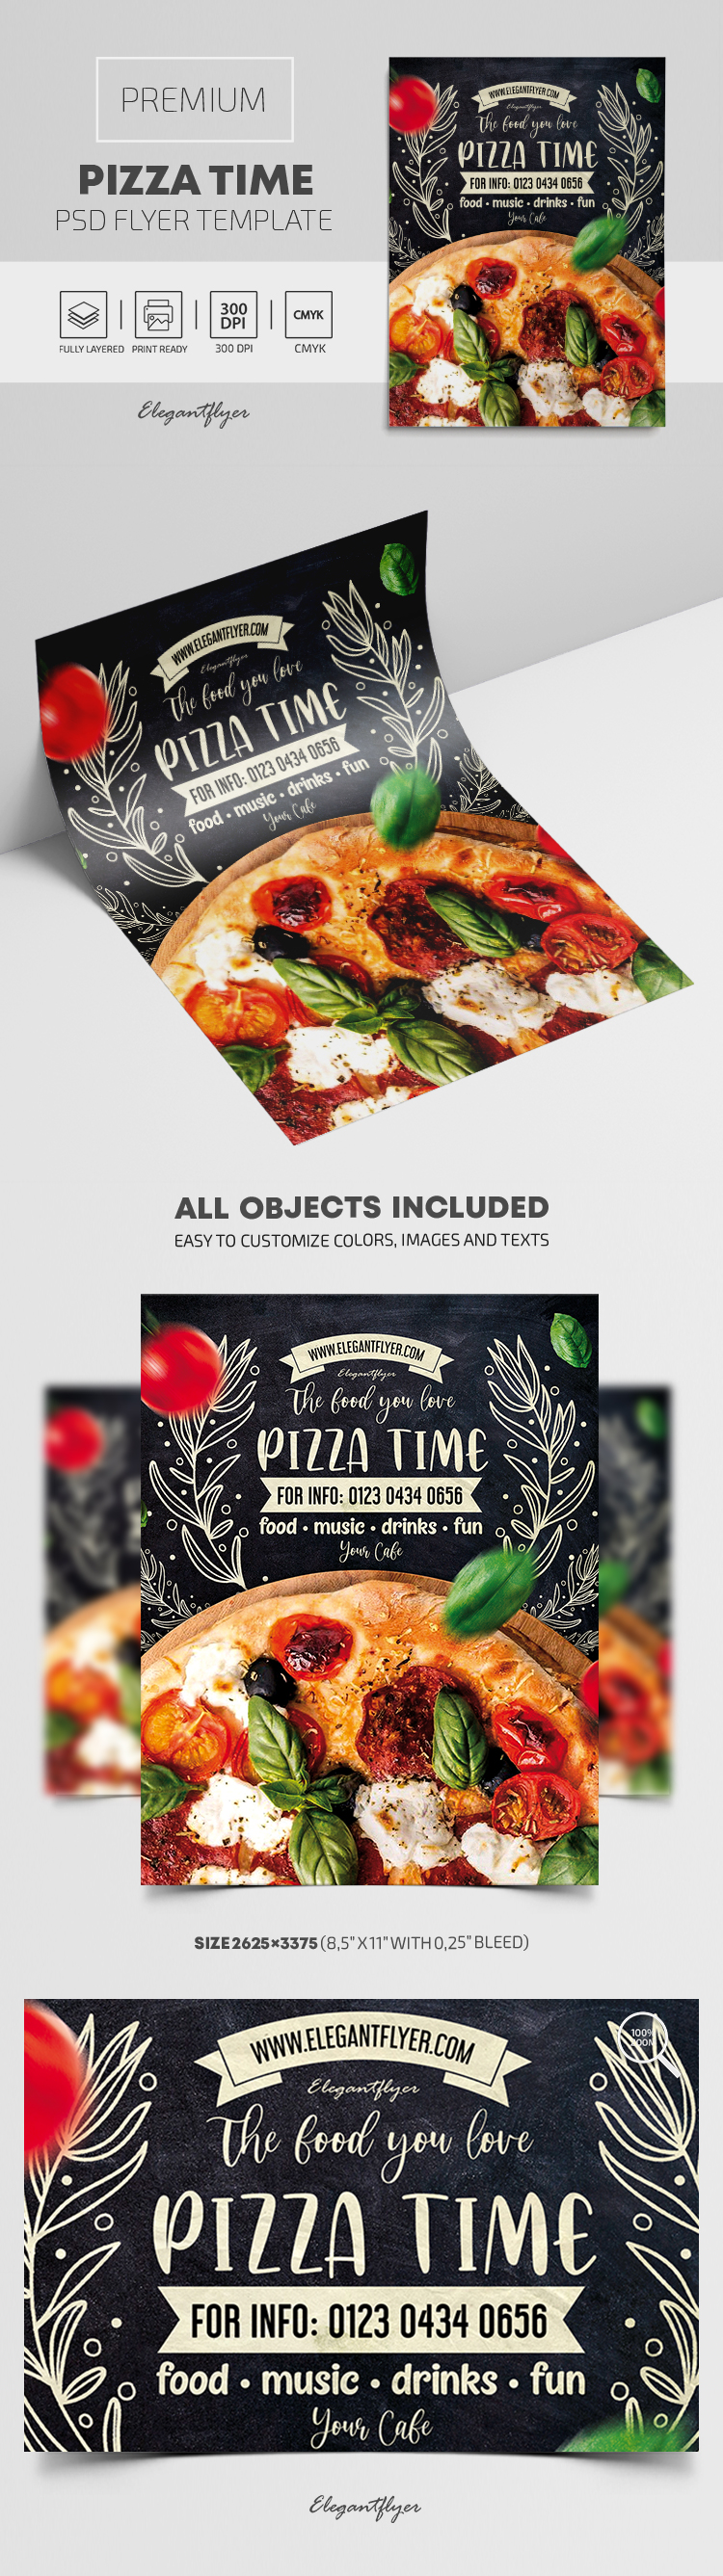 Pizza Time – Premium PSD Flyer Template